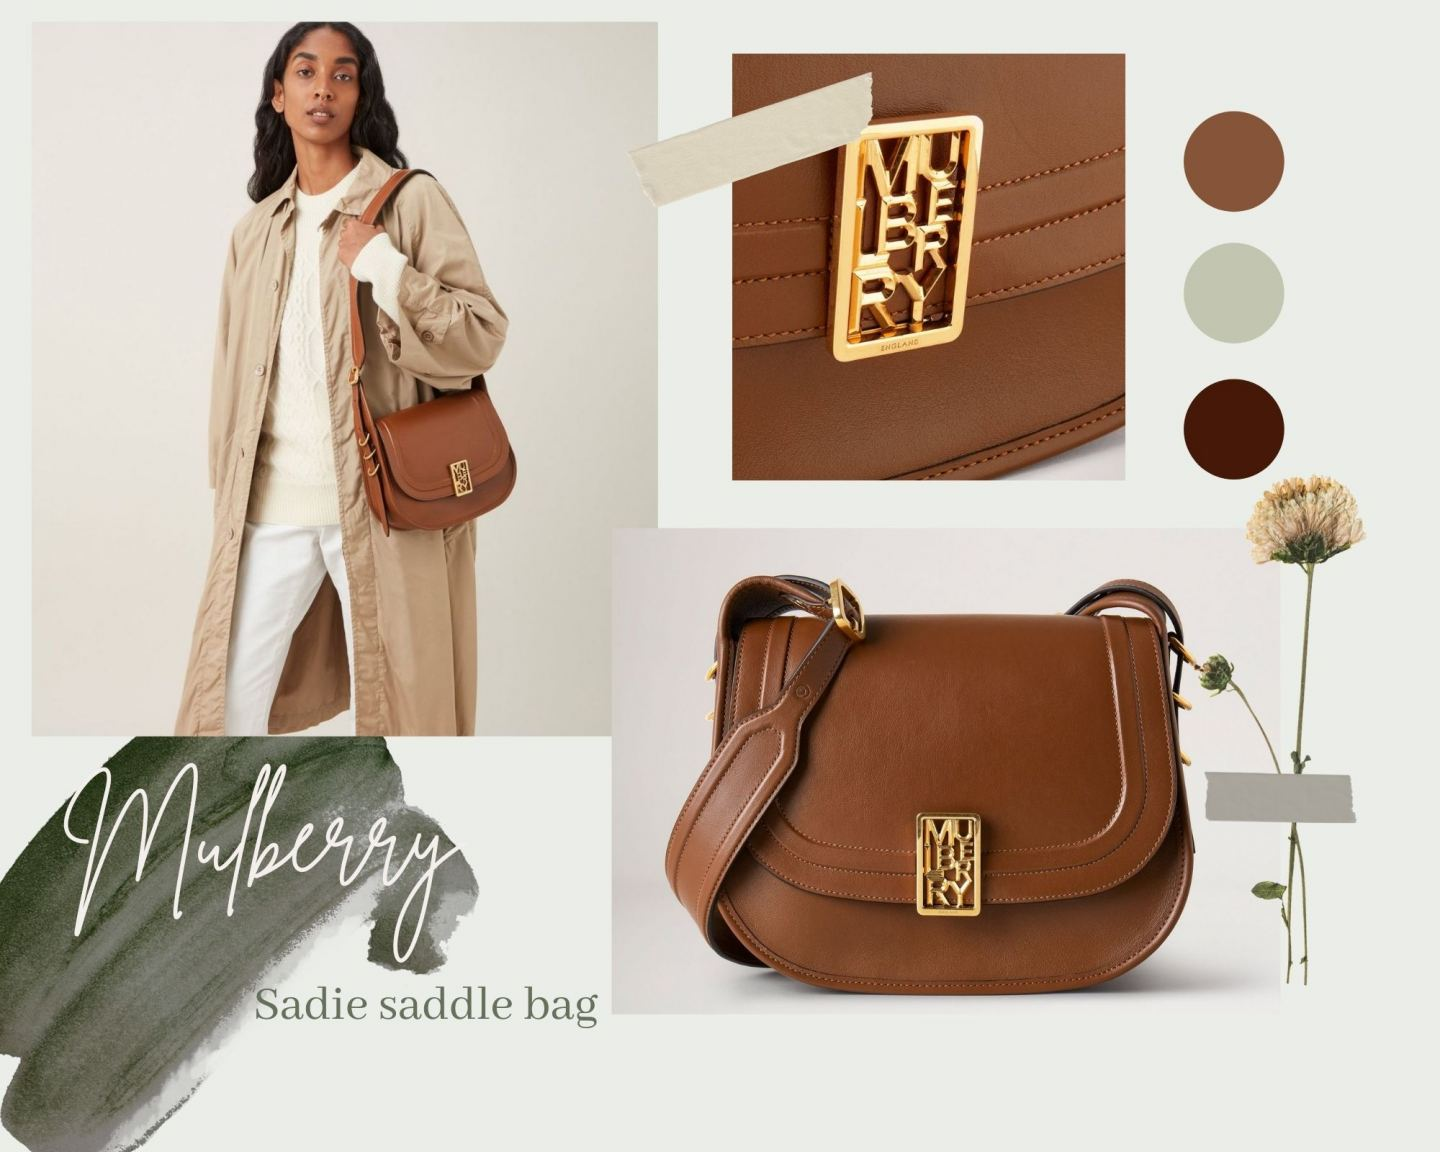 Let's Chat About The Mulberry Sadie Satchel Bag